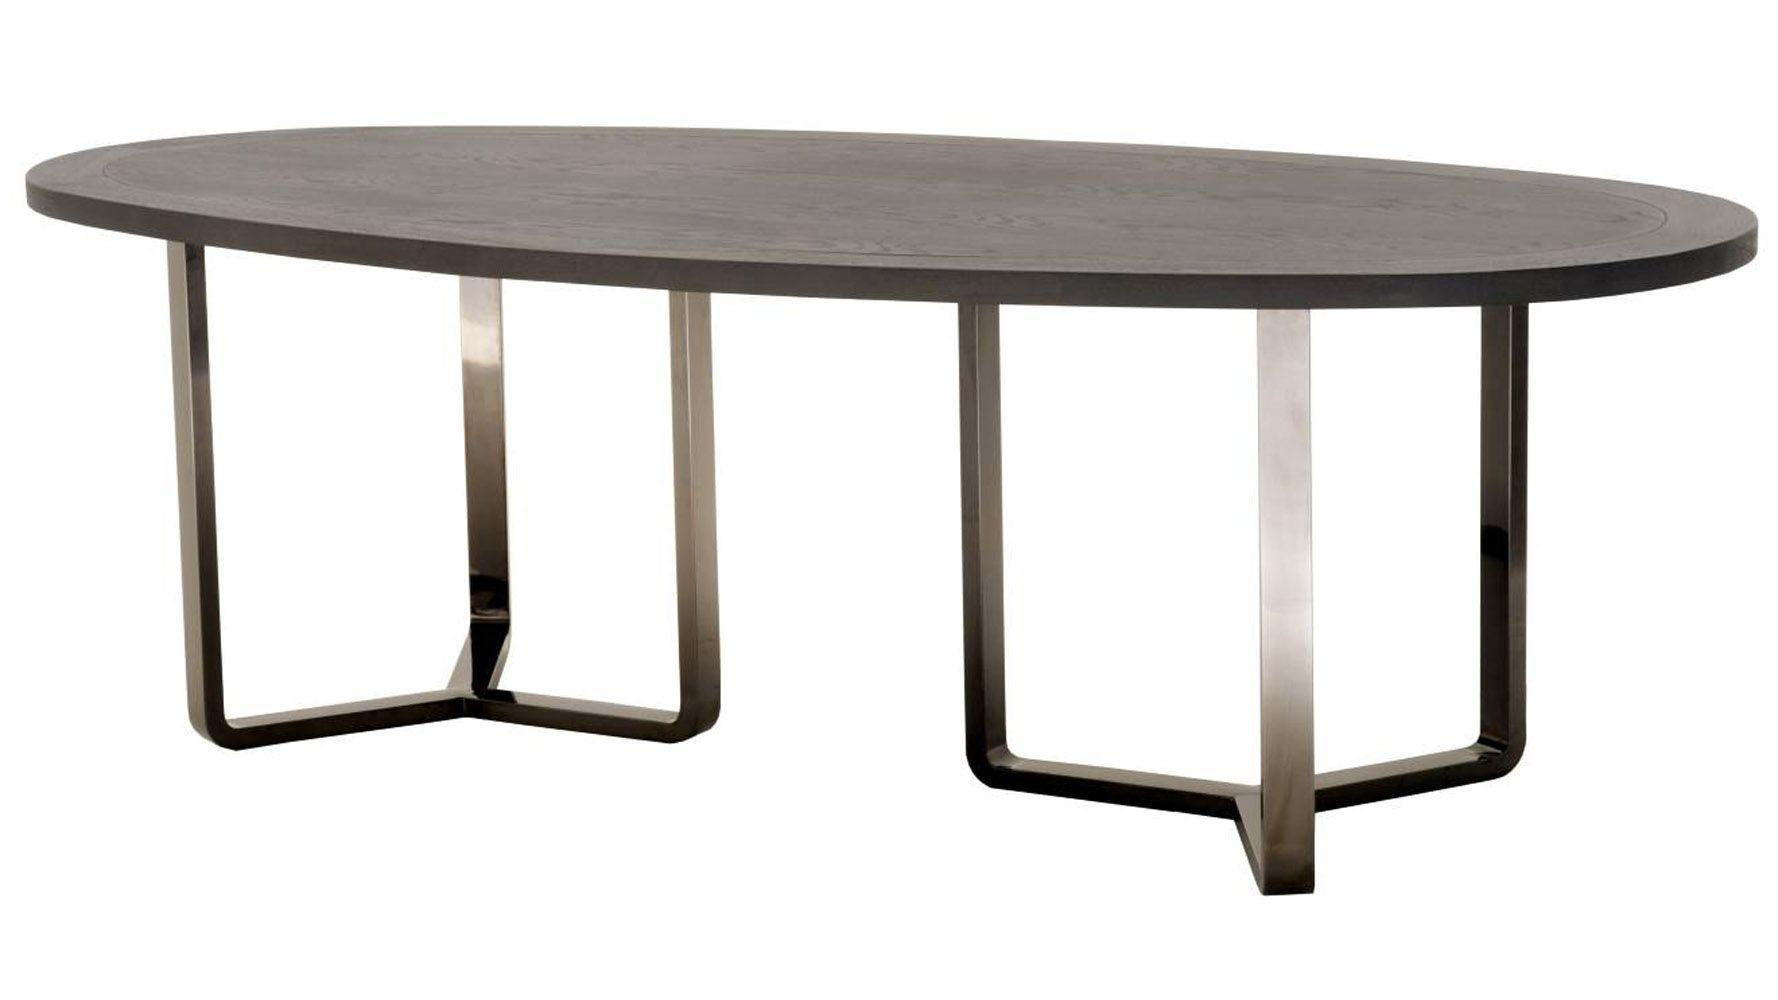 Jaffa Oval Oak Dining Table Stainless Steel Base